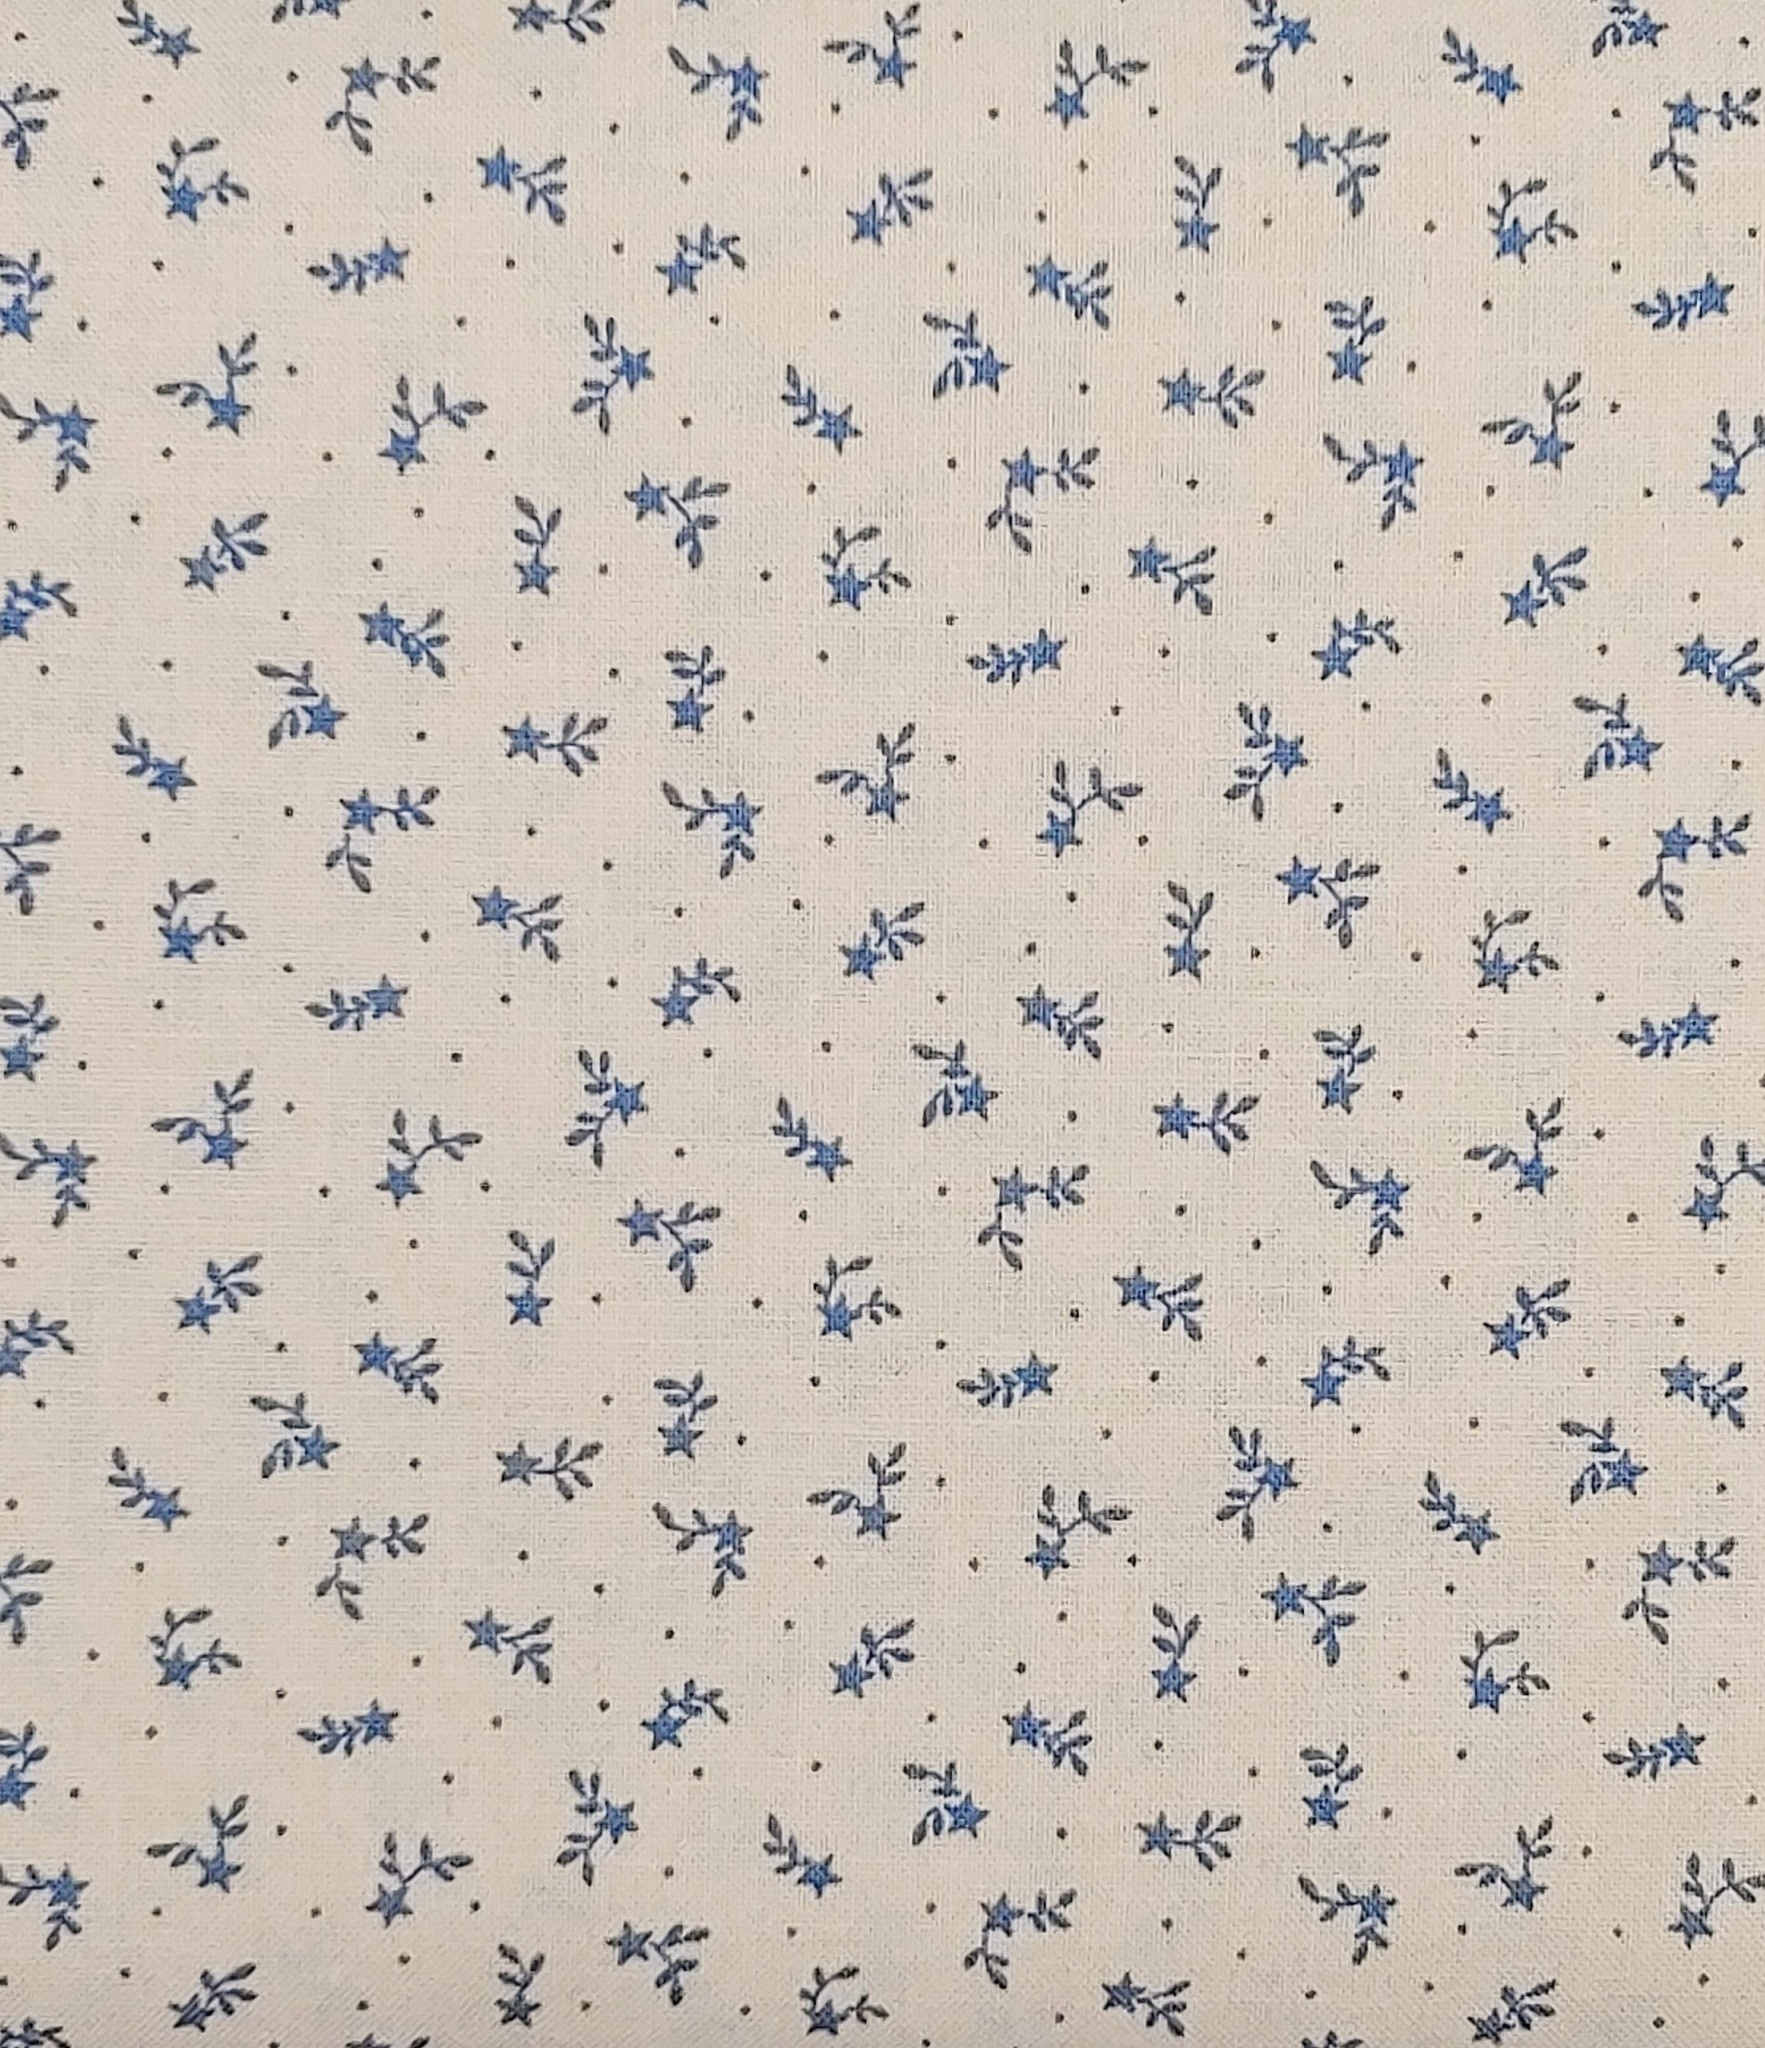 LECIEN PER CM OR $13/M LECIEN Tiny Stars and Branches white with blue